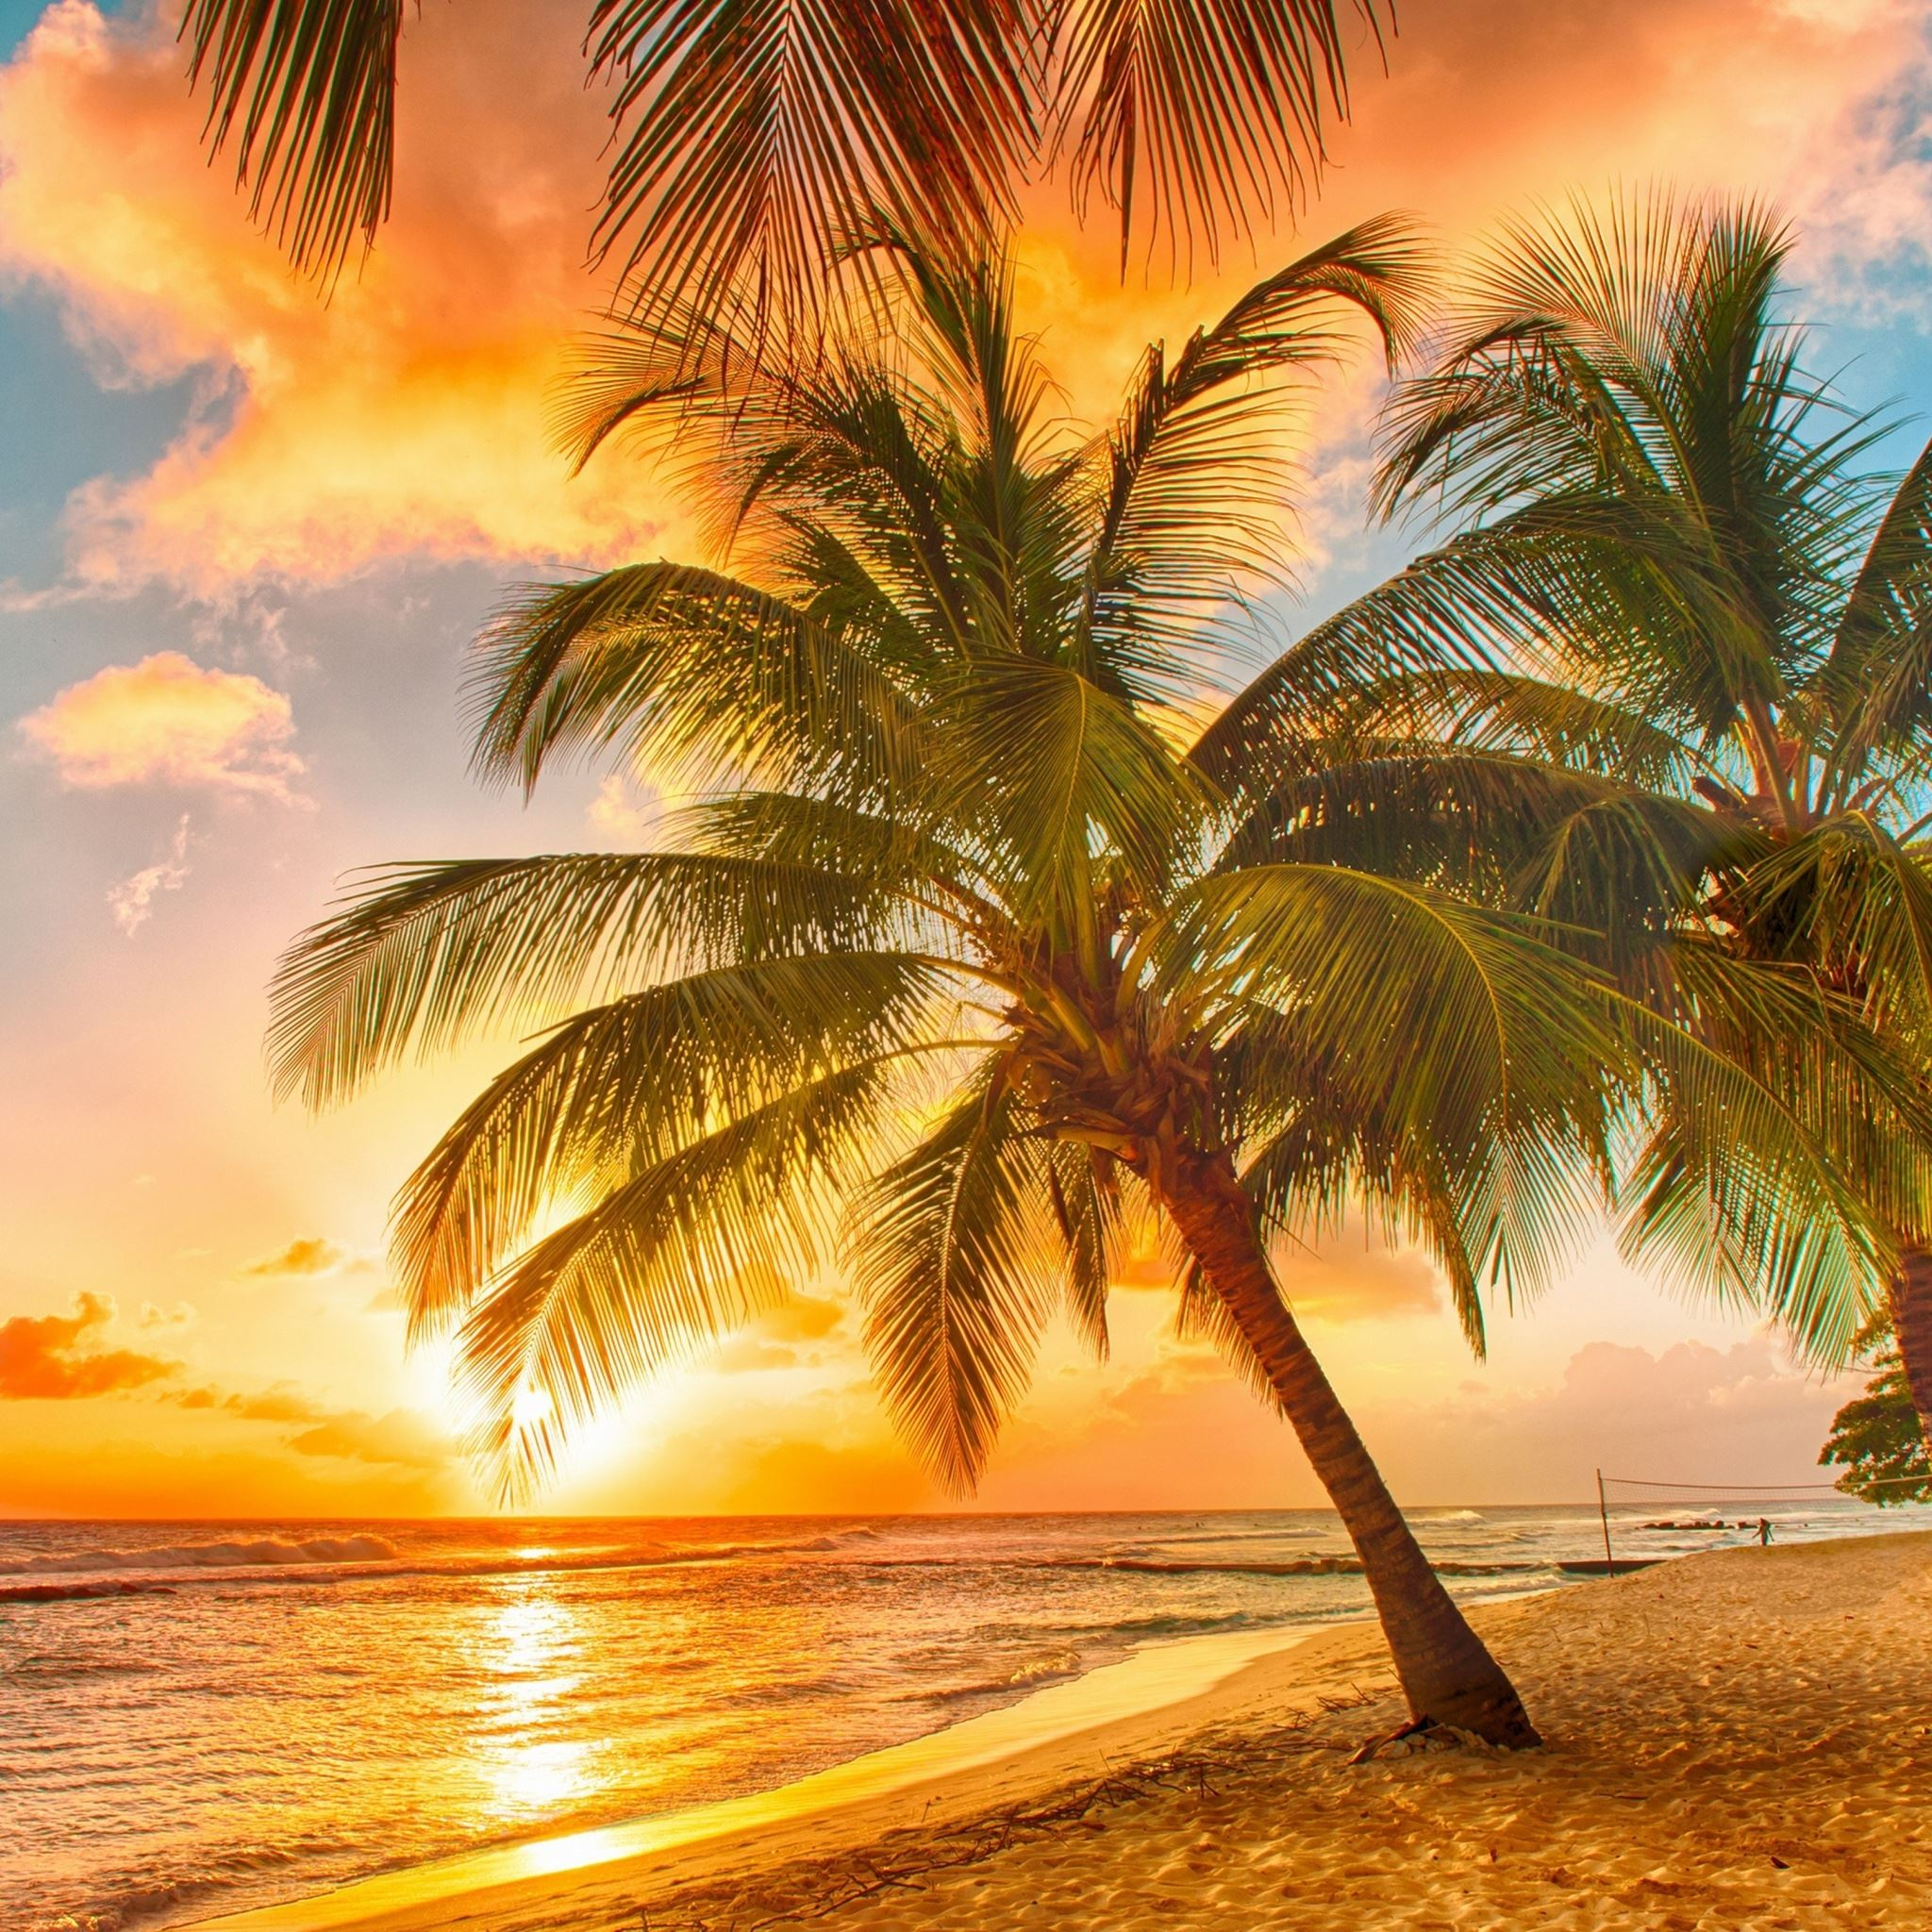 Palm Tree Tropical Beach iPad Air wallpaper